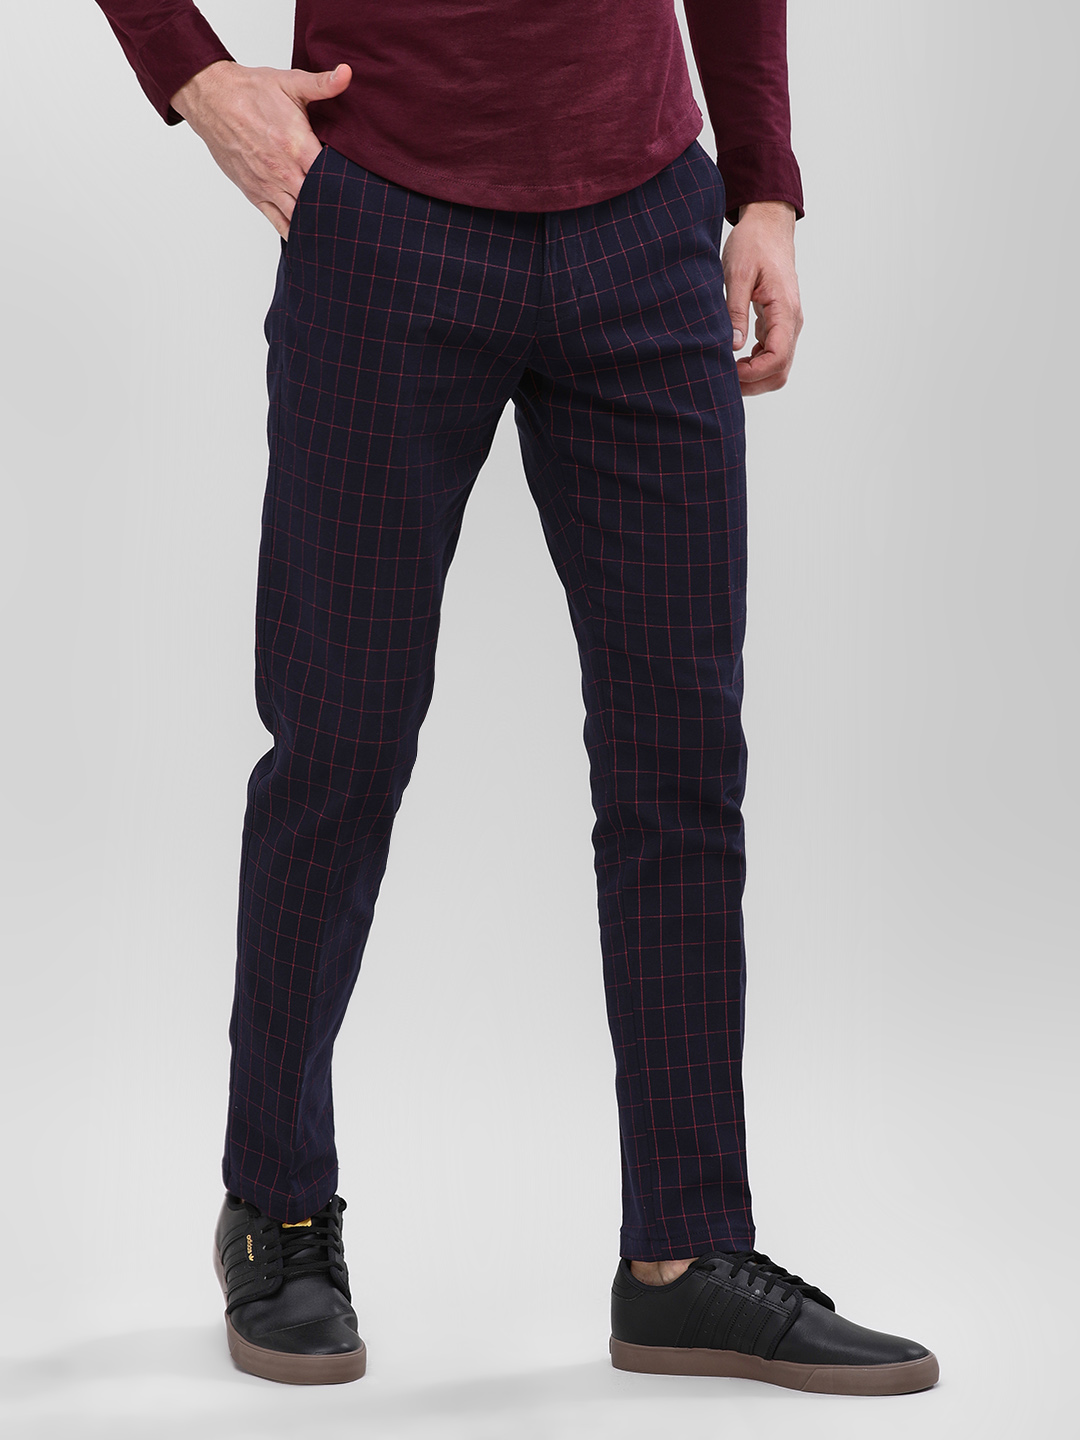 Mr Button Blue Windowpane Checkered Slim Trousers 1